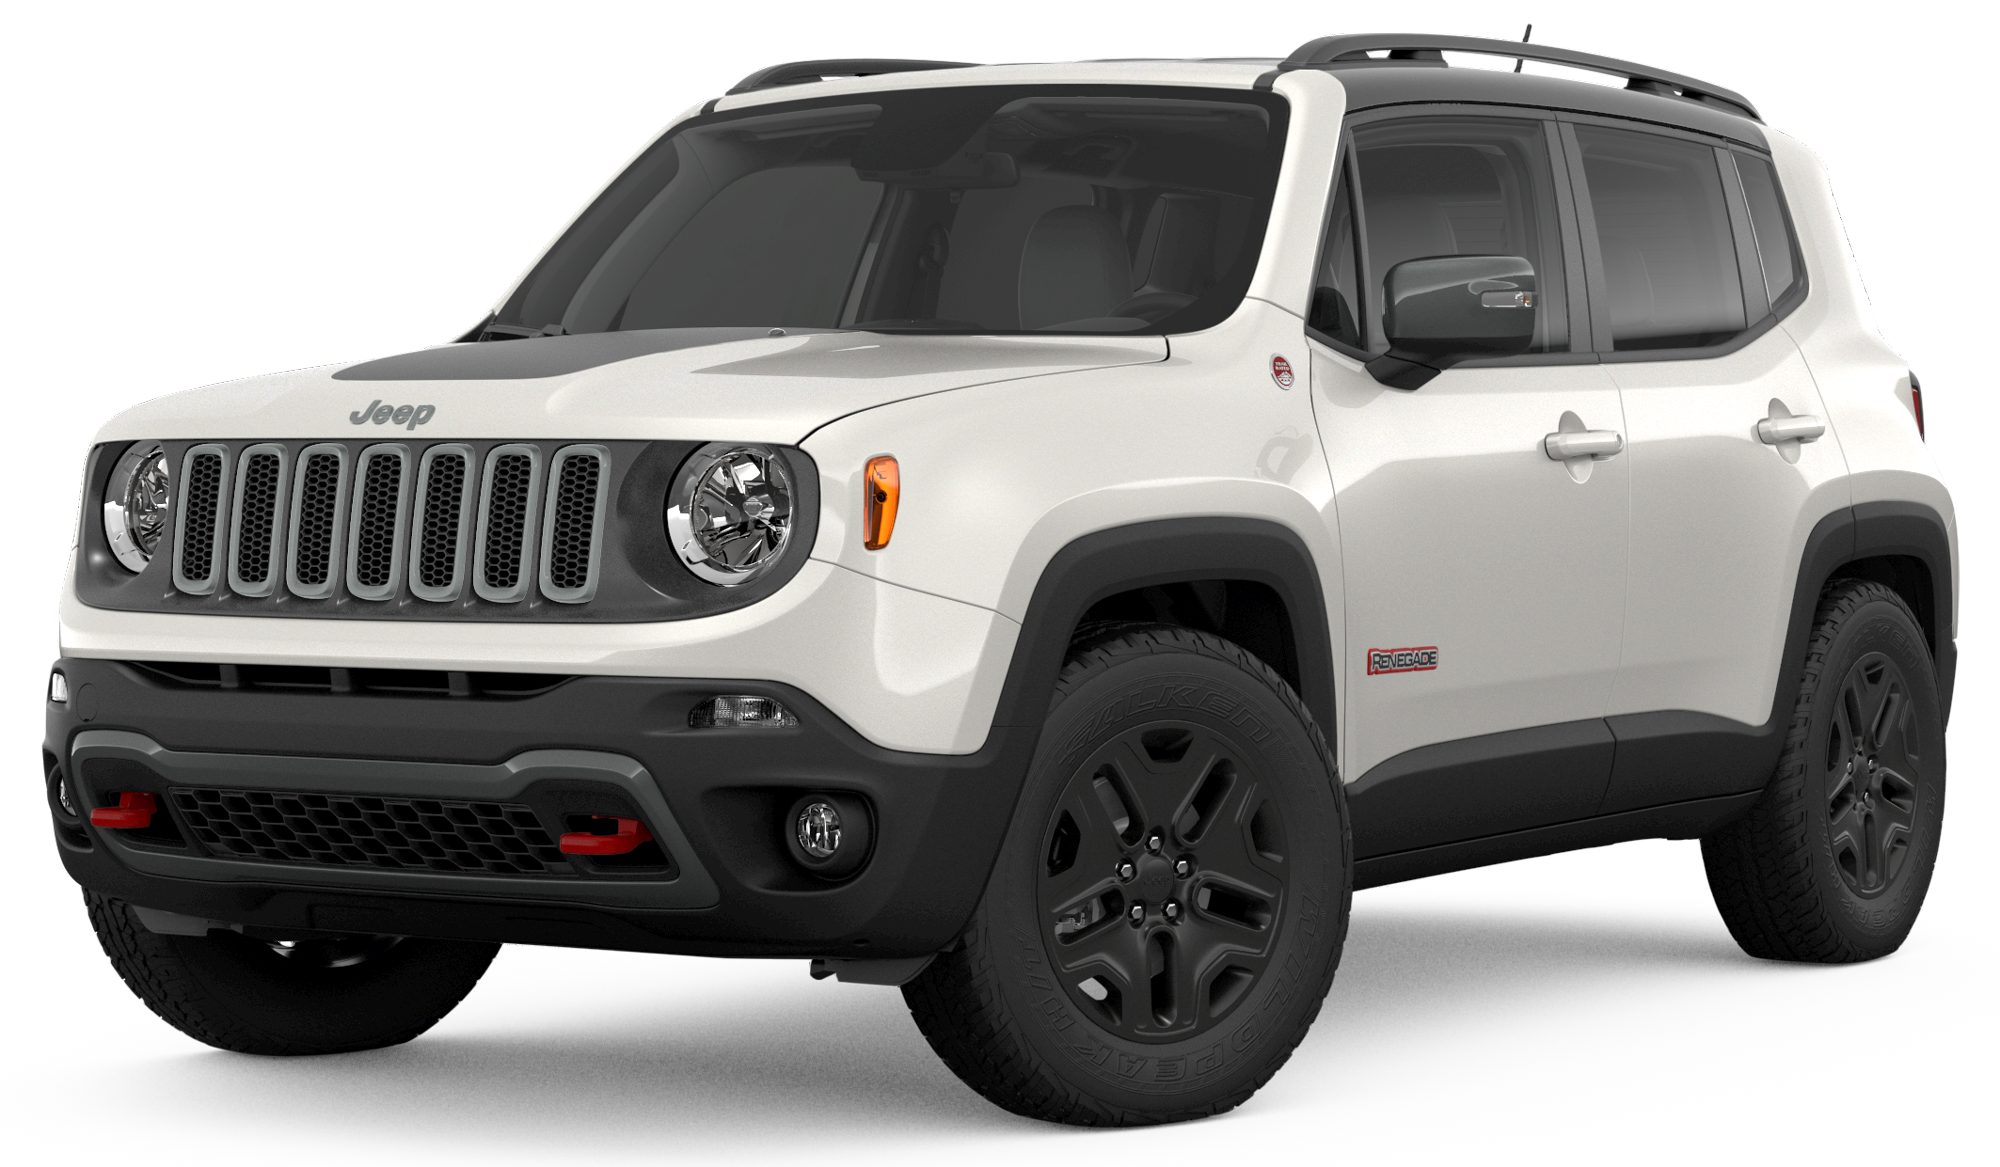 Review & Compare Jeep Renegade at Larry H. Miller Chrysler Jeep Dodge Ram Surprise